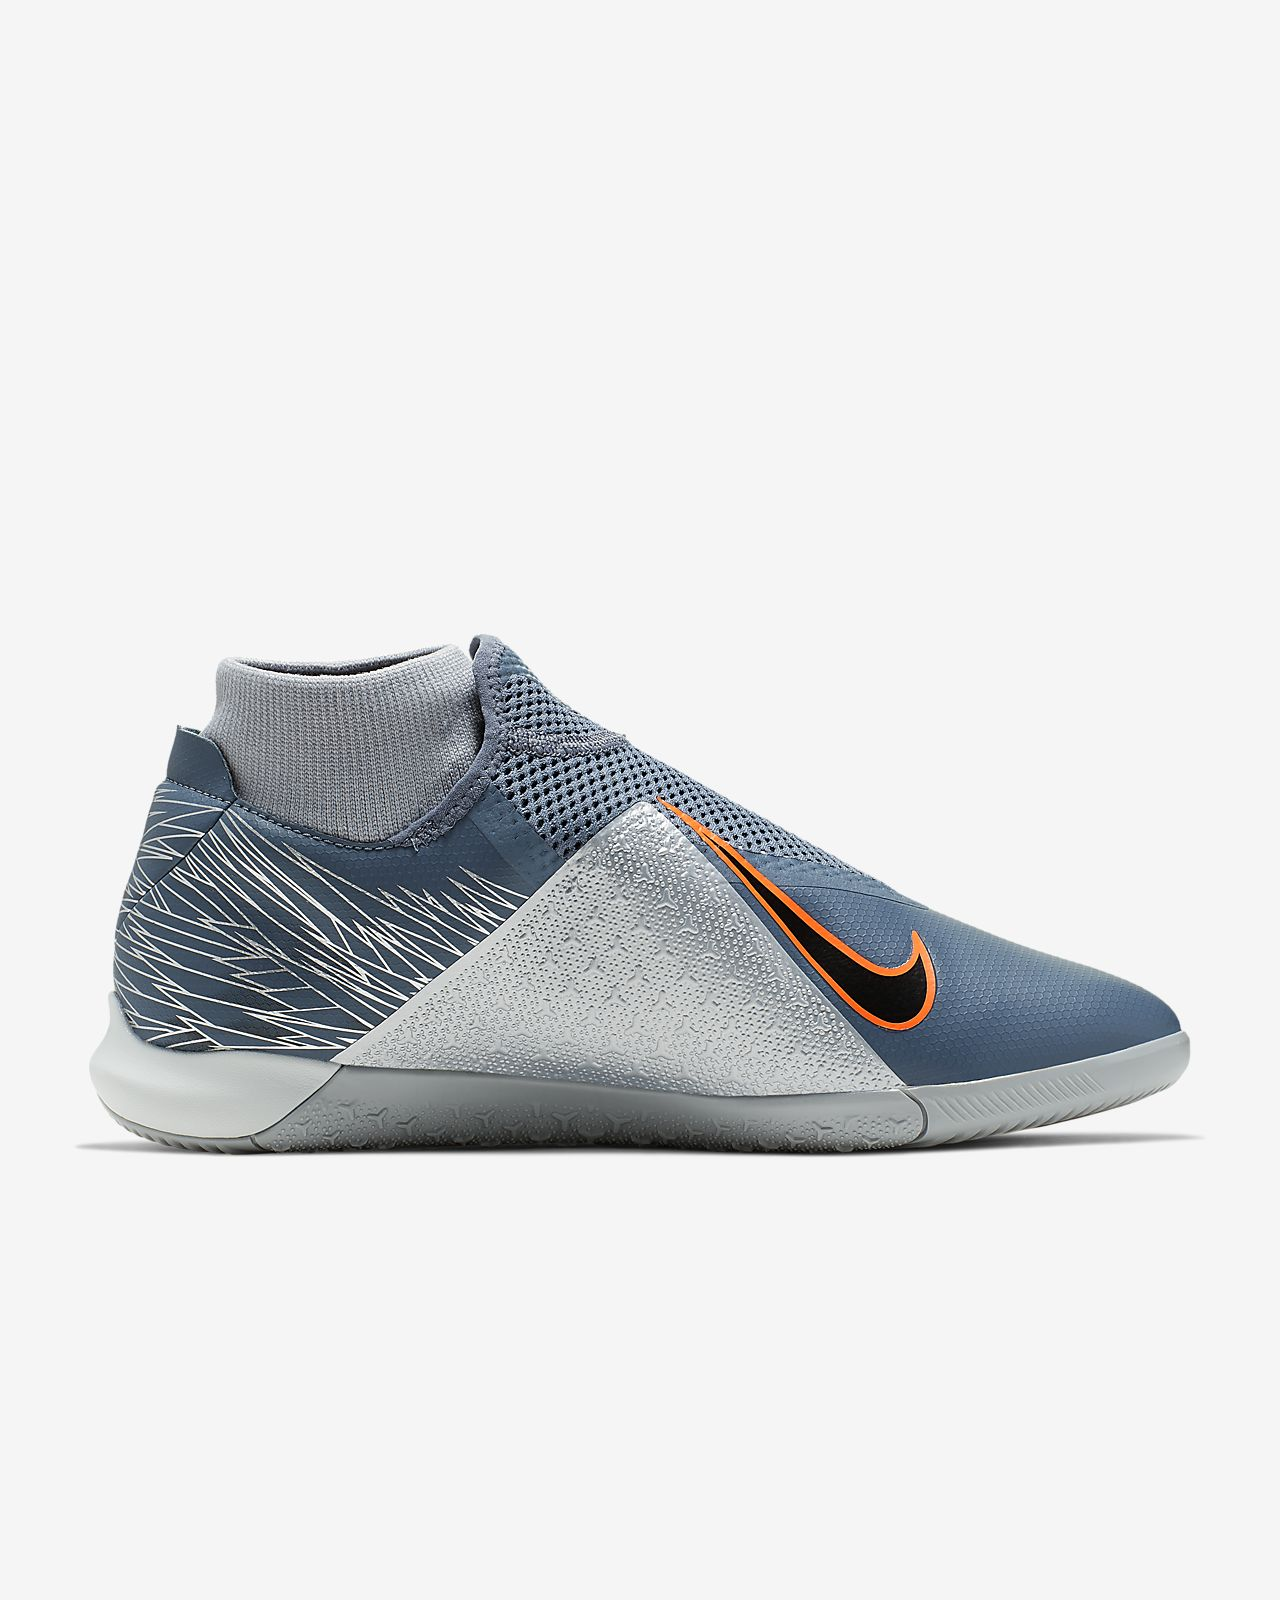 44935b7a1c3 Nike Phantom Vision Academy Dynamic Fit IC Indoor Court Soccer Shoe ...